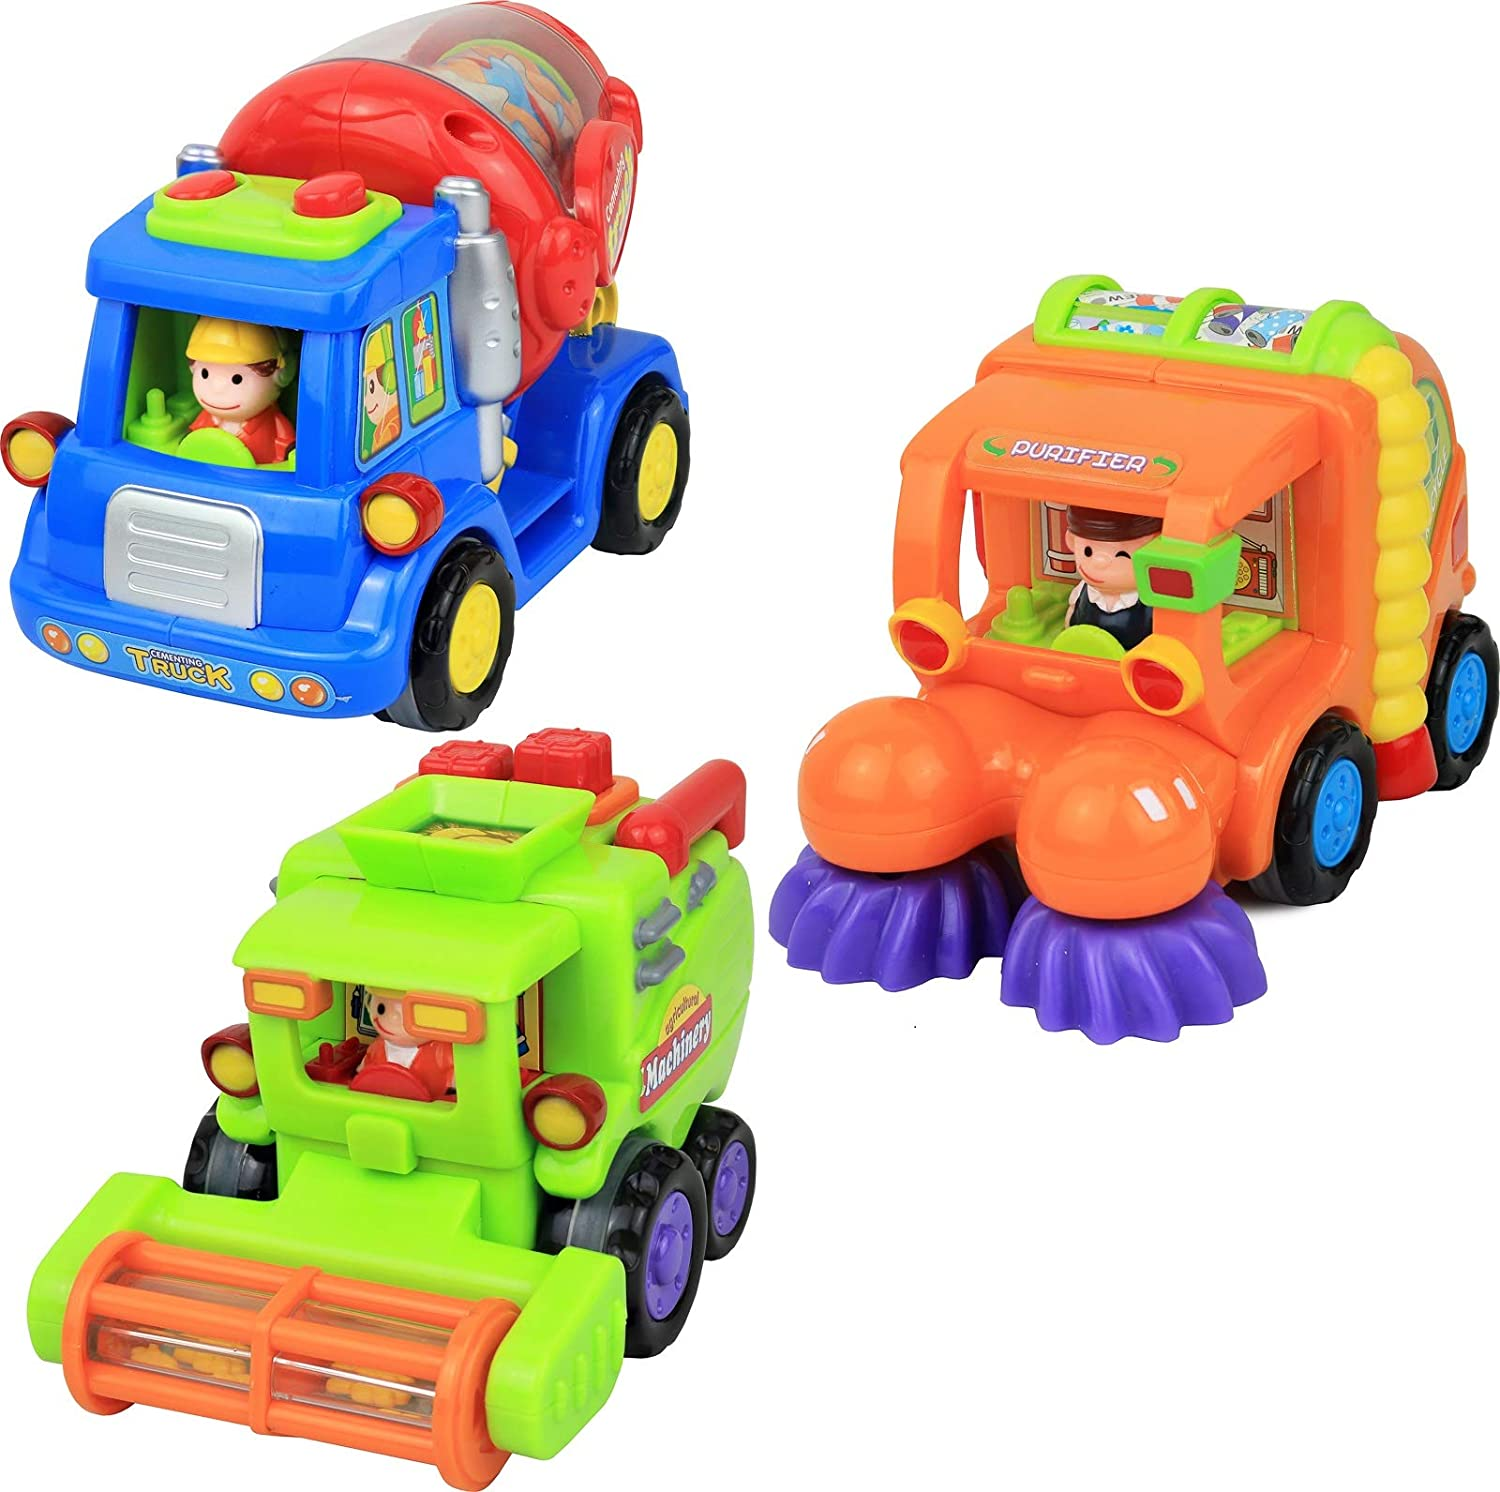 Click N' Play Push & Go Cartoon Friction Powered Car Toys for Kids, Cement Truck, Street Sweeper Truck & Harvester Truck (Set of 3)